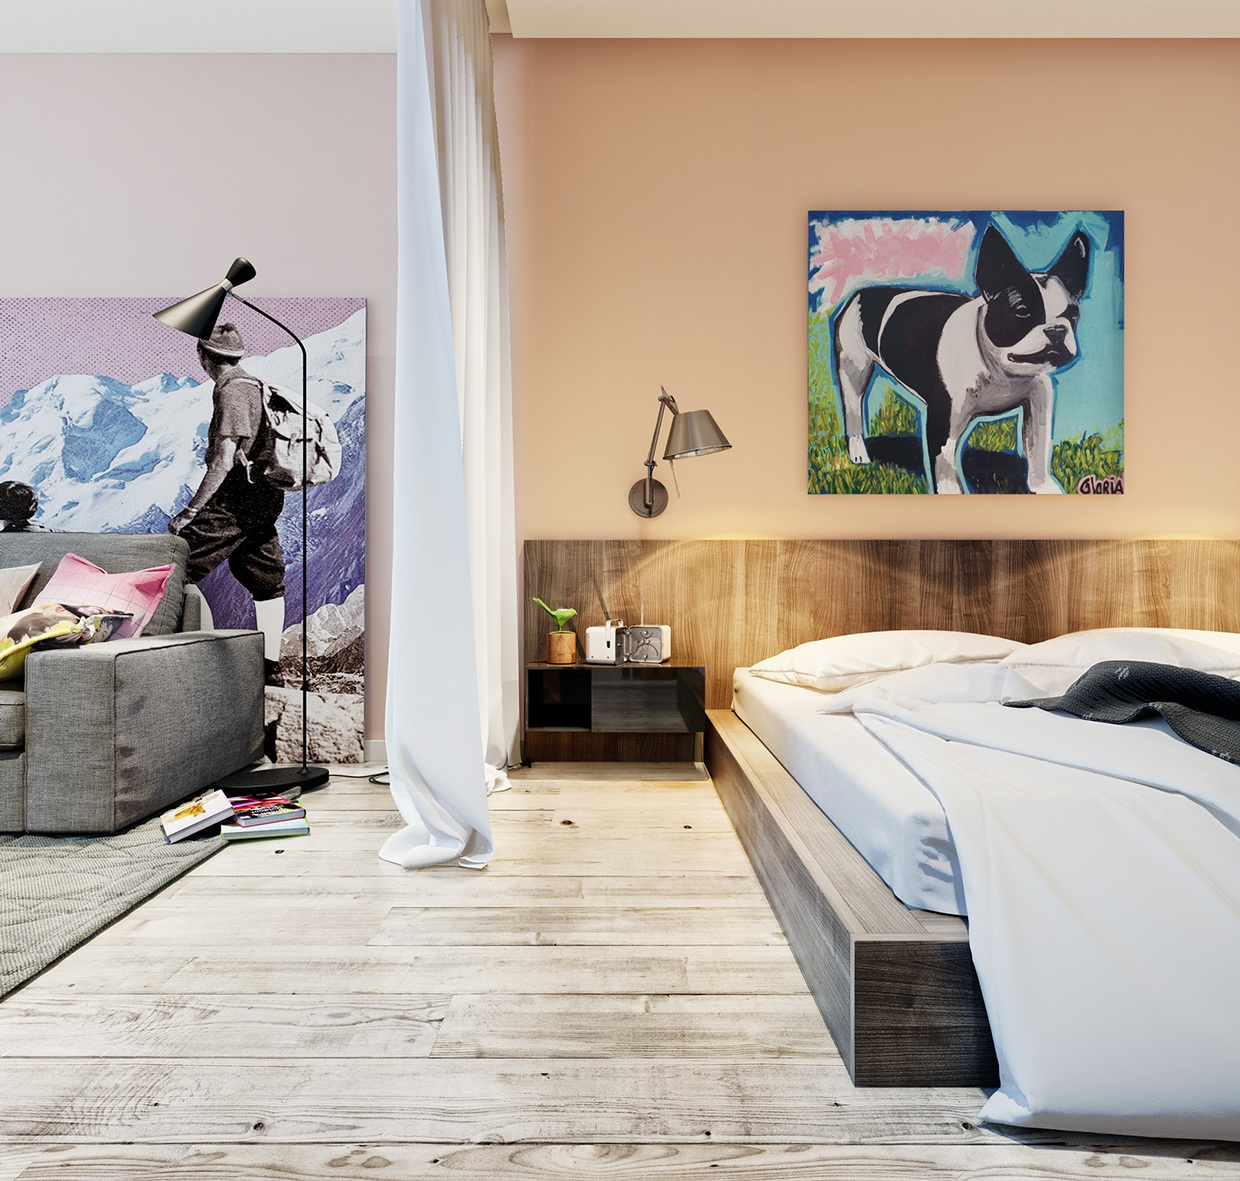 Adorable Pop Art - Living and sleeping areas exist in harmony in these comfortable studio spaces